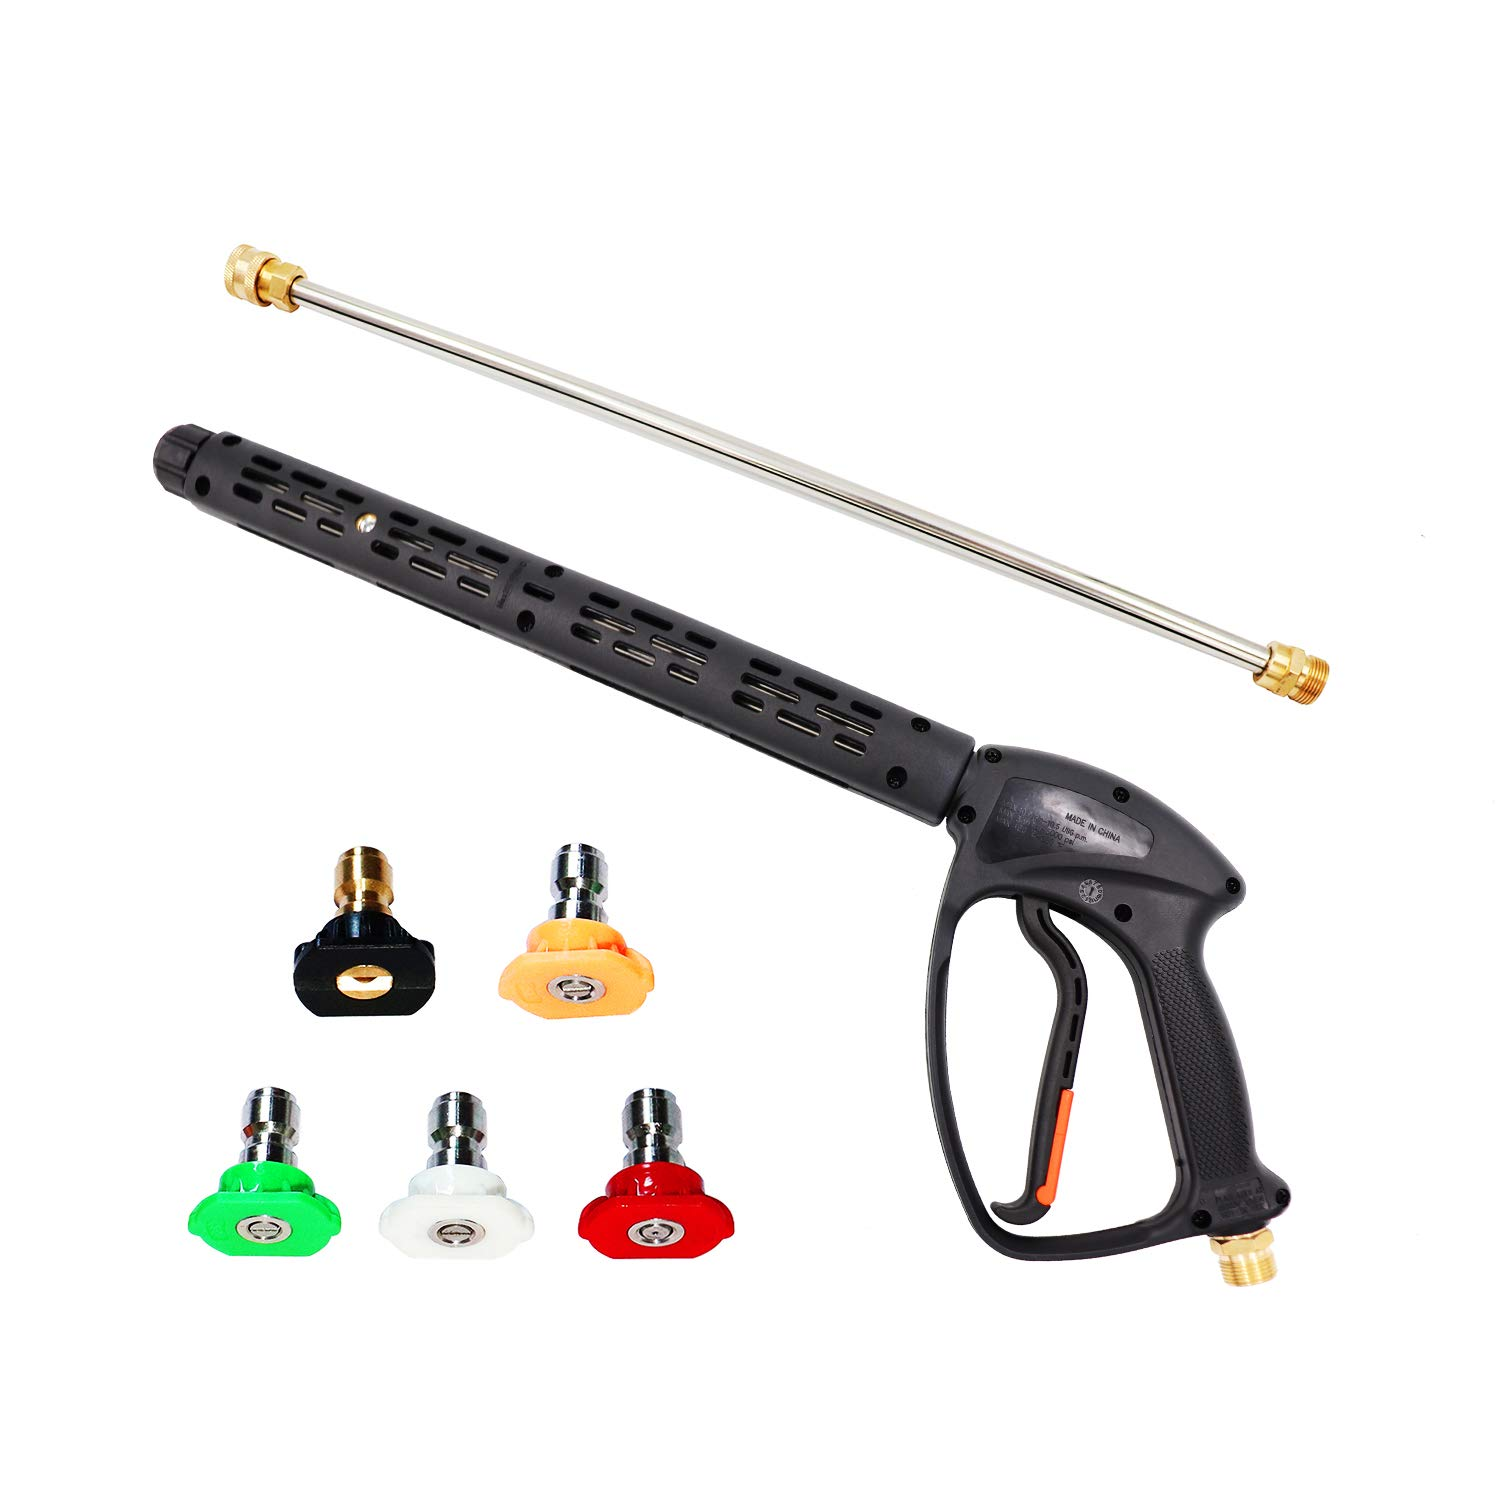 EDOU 5000 PSI High Pressure Power Washer Gun Power Spray Gun, 19 Inch Extension Replacement Wand Lance, 5 Quick Connect Spray Nozzles Tips